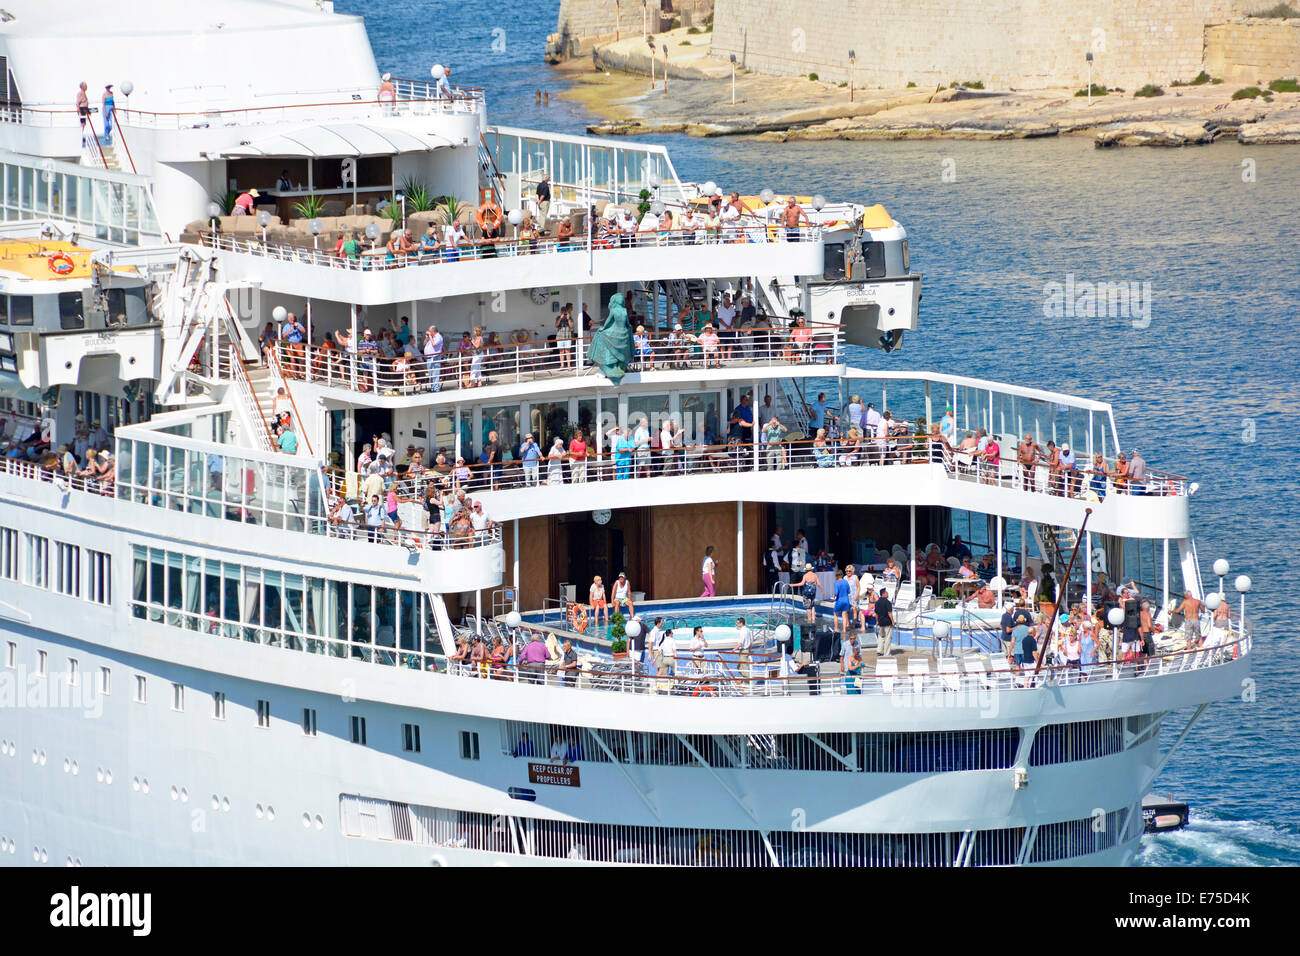 Passengers Gathered On The Stern Decks Of Cruise Ship